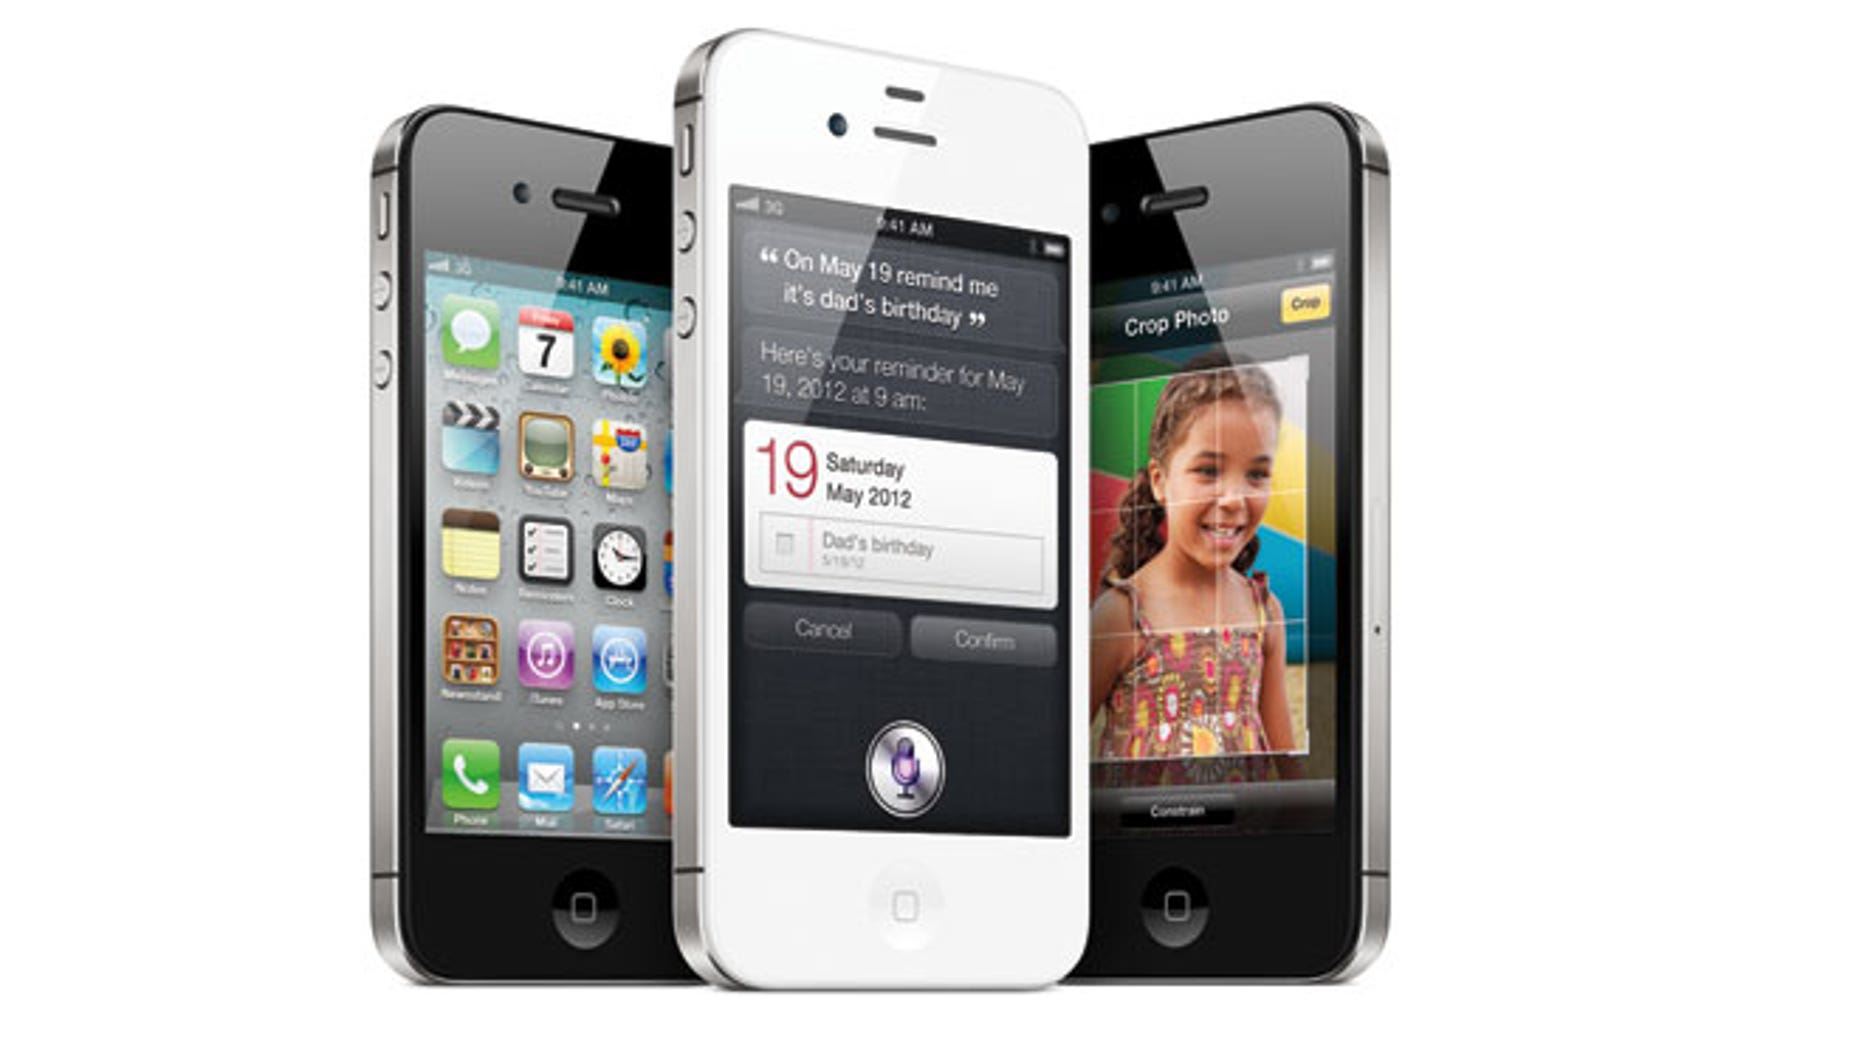 Apple's iPhone 4S featuring personal assistant app, Siri.